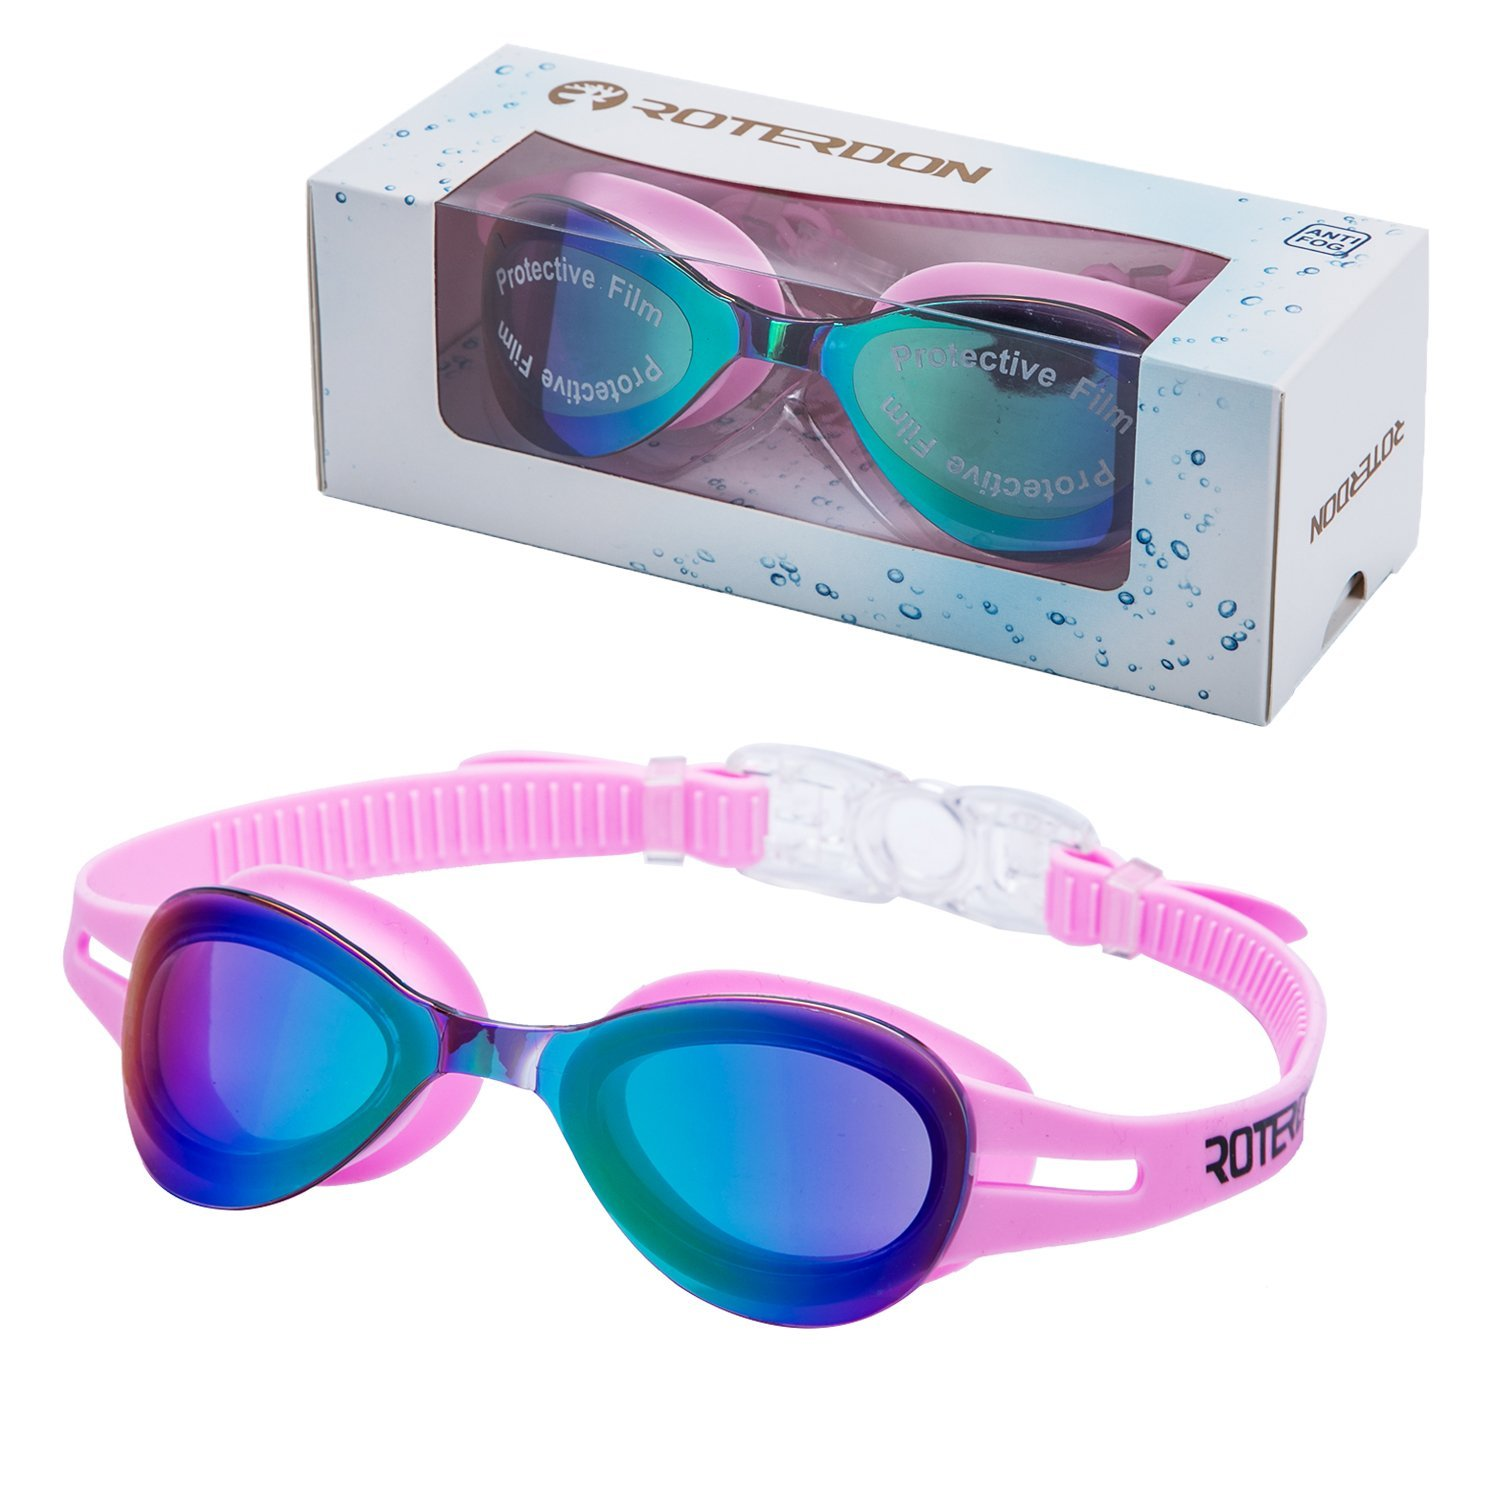 d89c79578ac5 Get Quotations · Swimming Goggles Kids